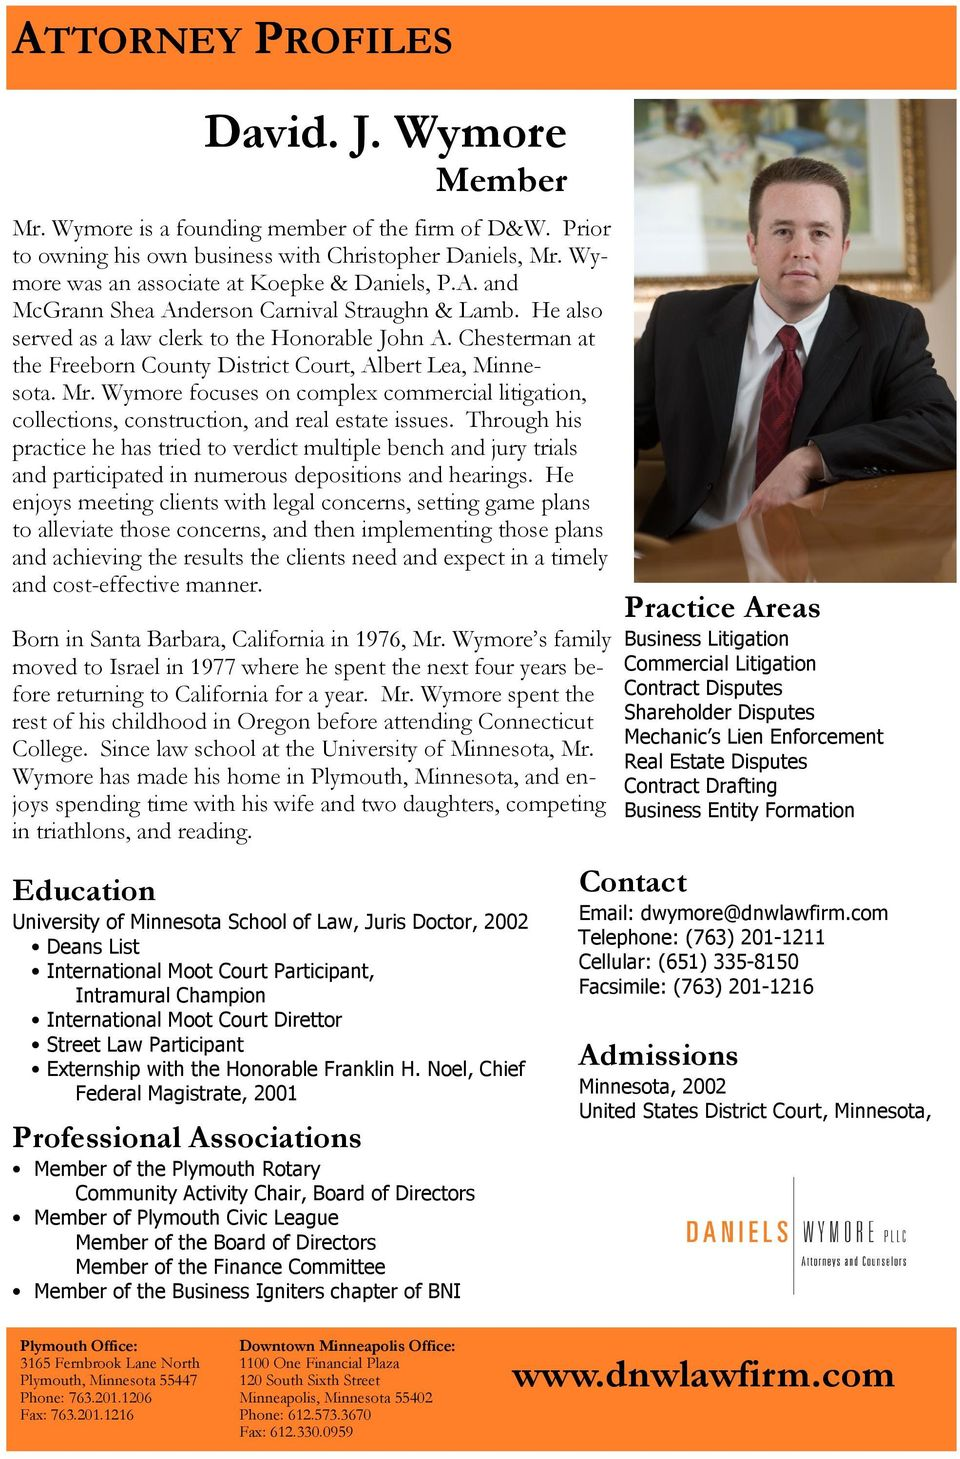 Wymore focuses on complex commercial litigation, collections, construction, and real estate issues.